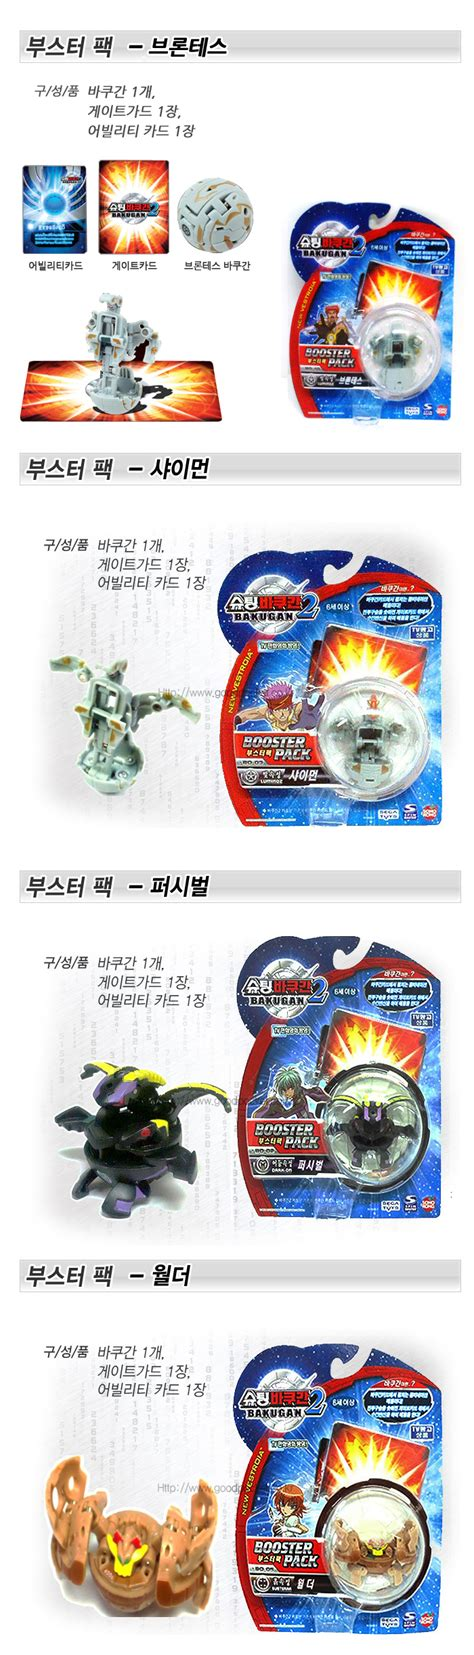 pack of h201 h209 부스터팩